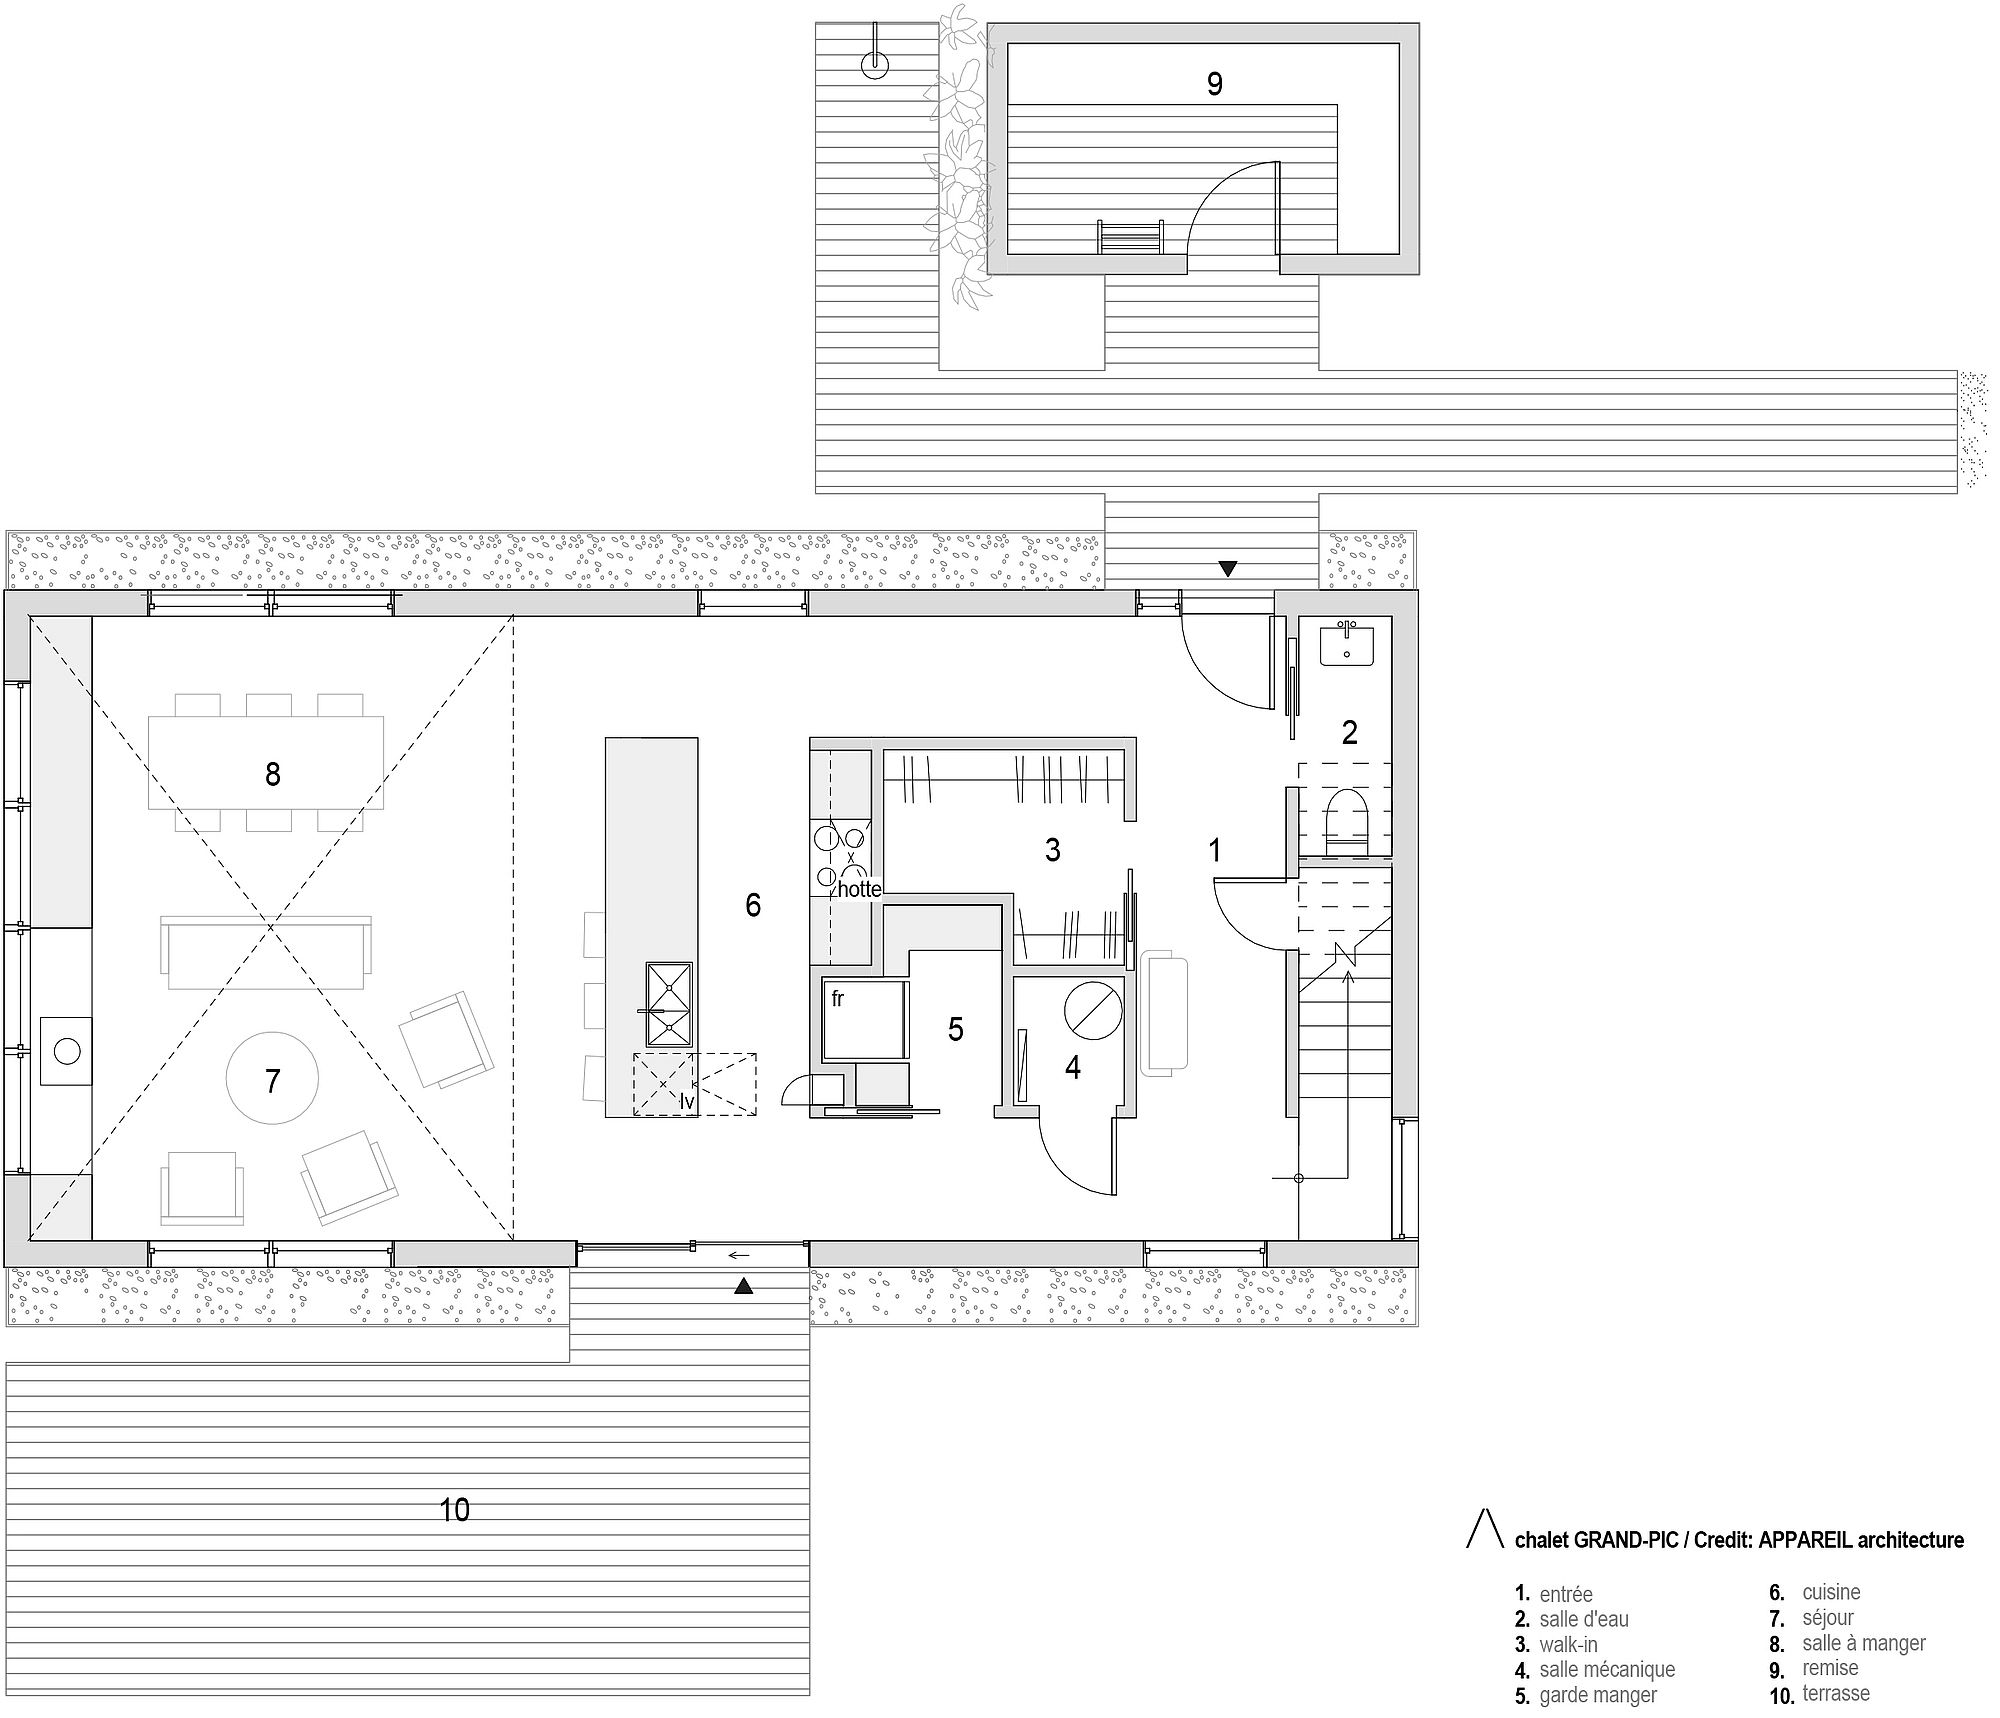 First level floor plan of Grand-Pic Chalet